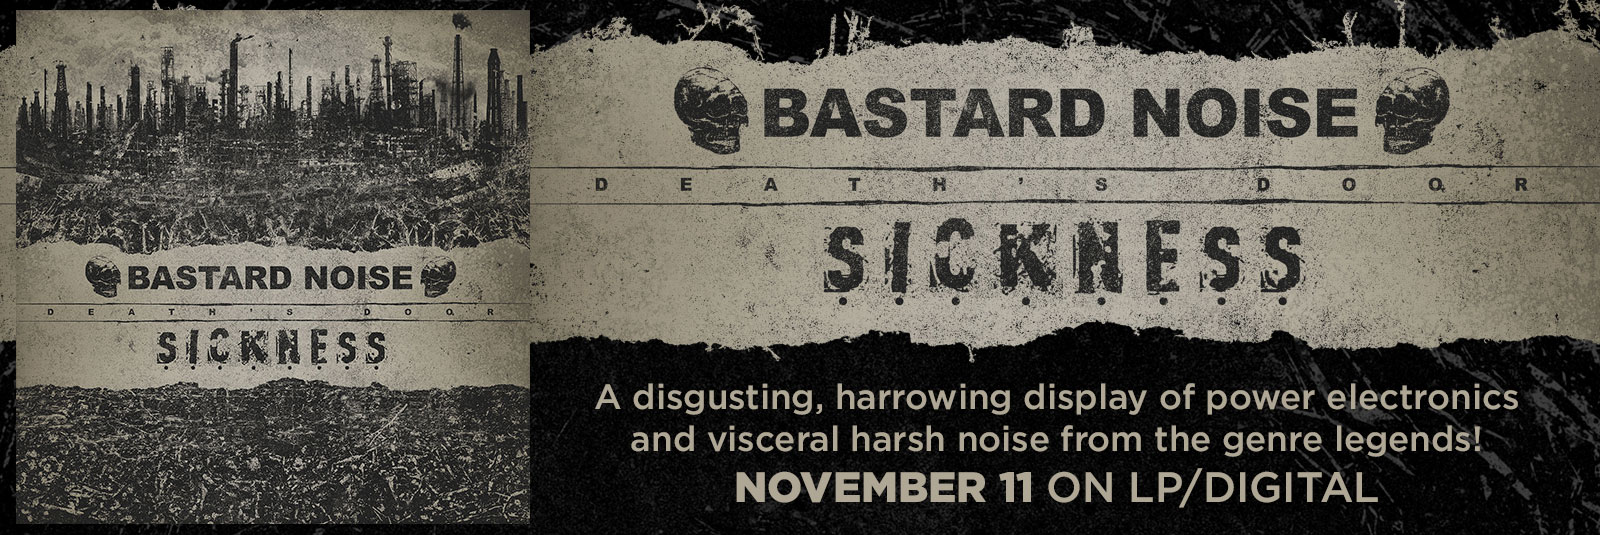 bastard-noise-sickness-split0lp